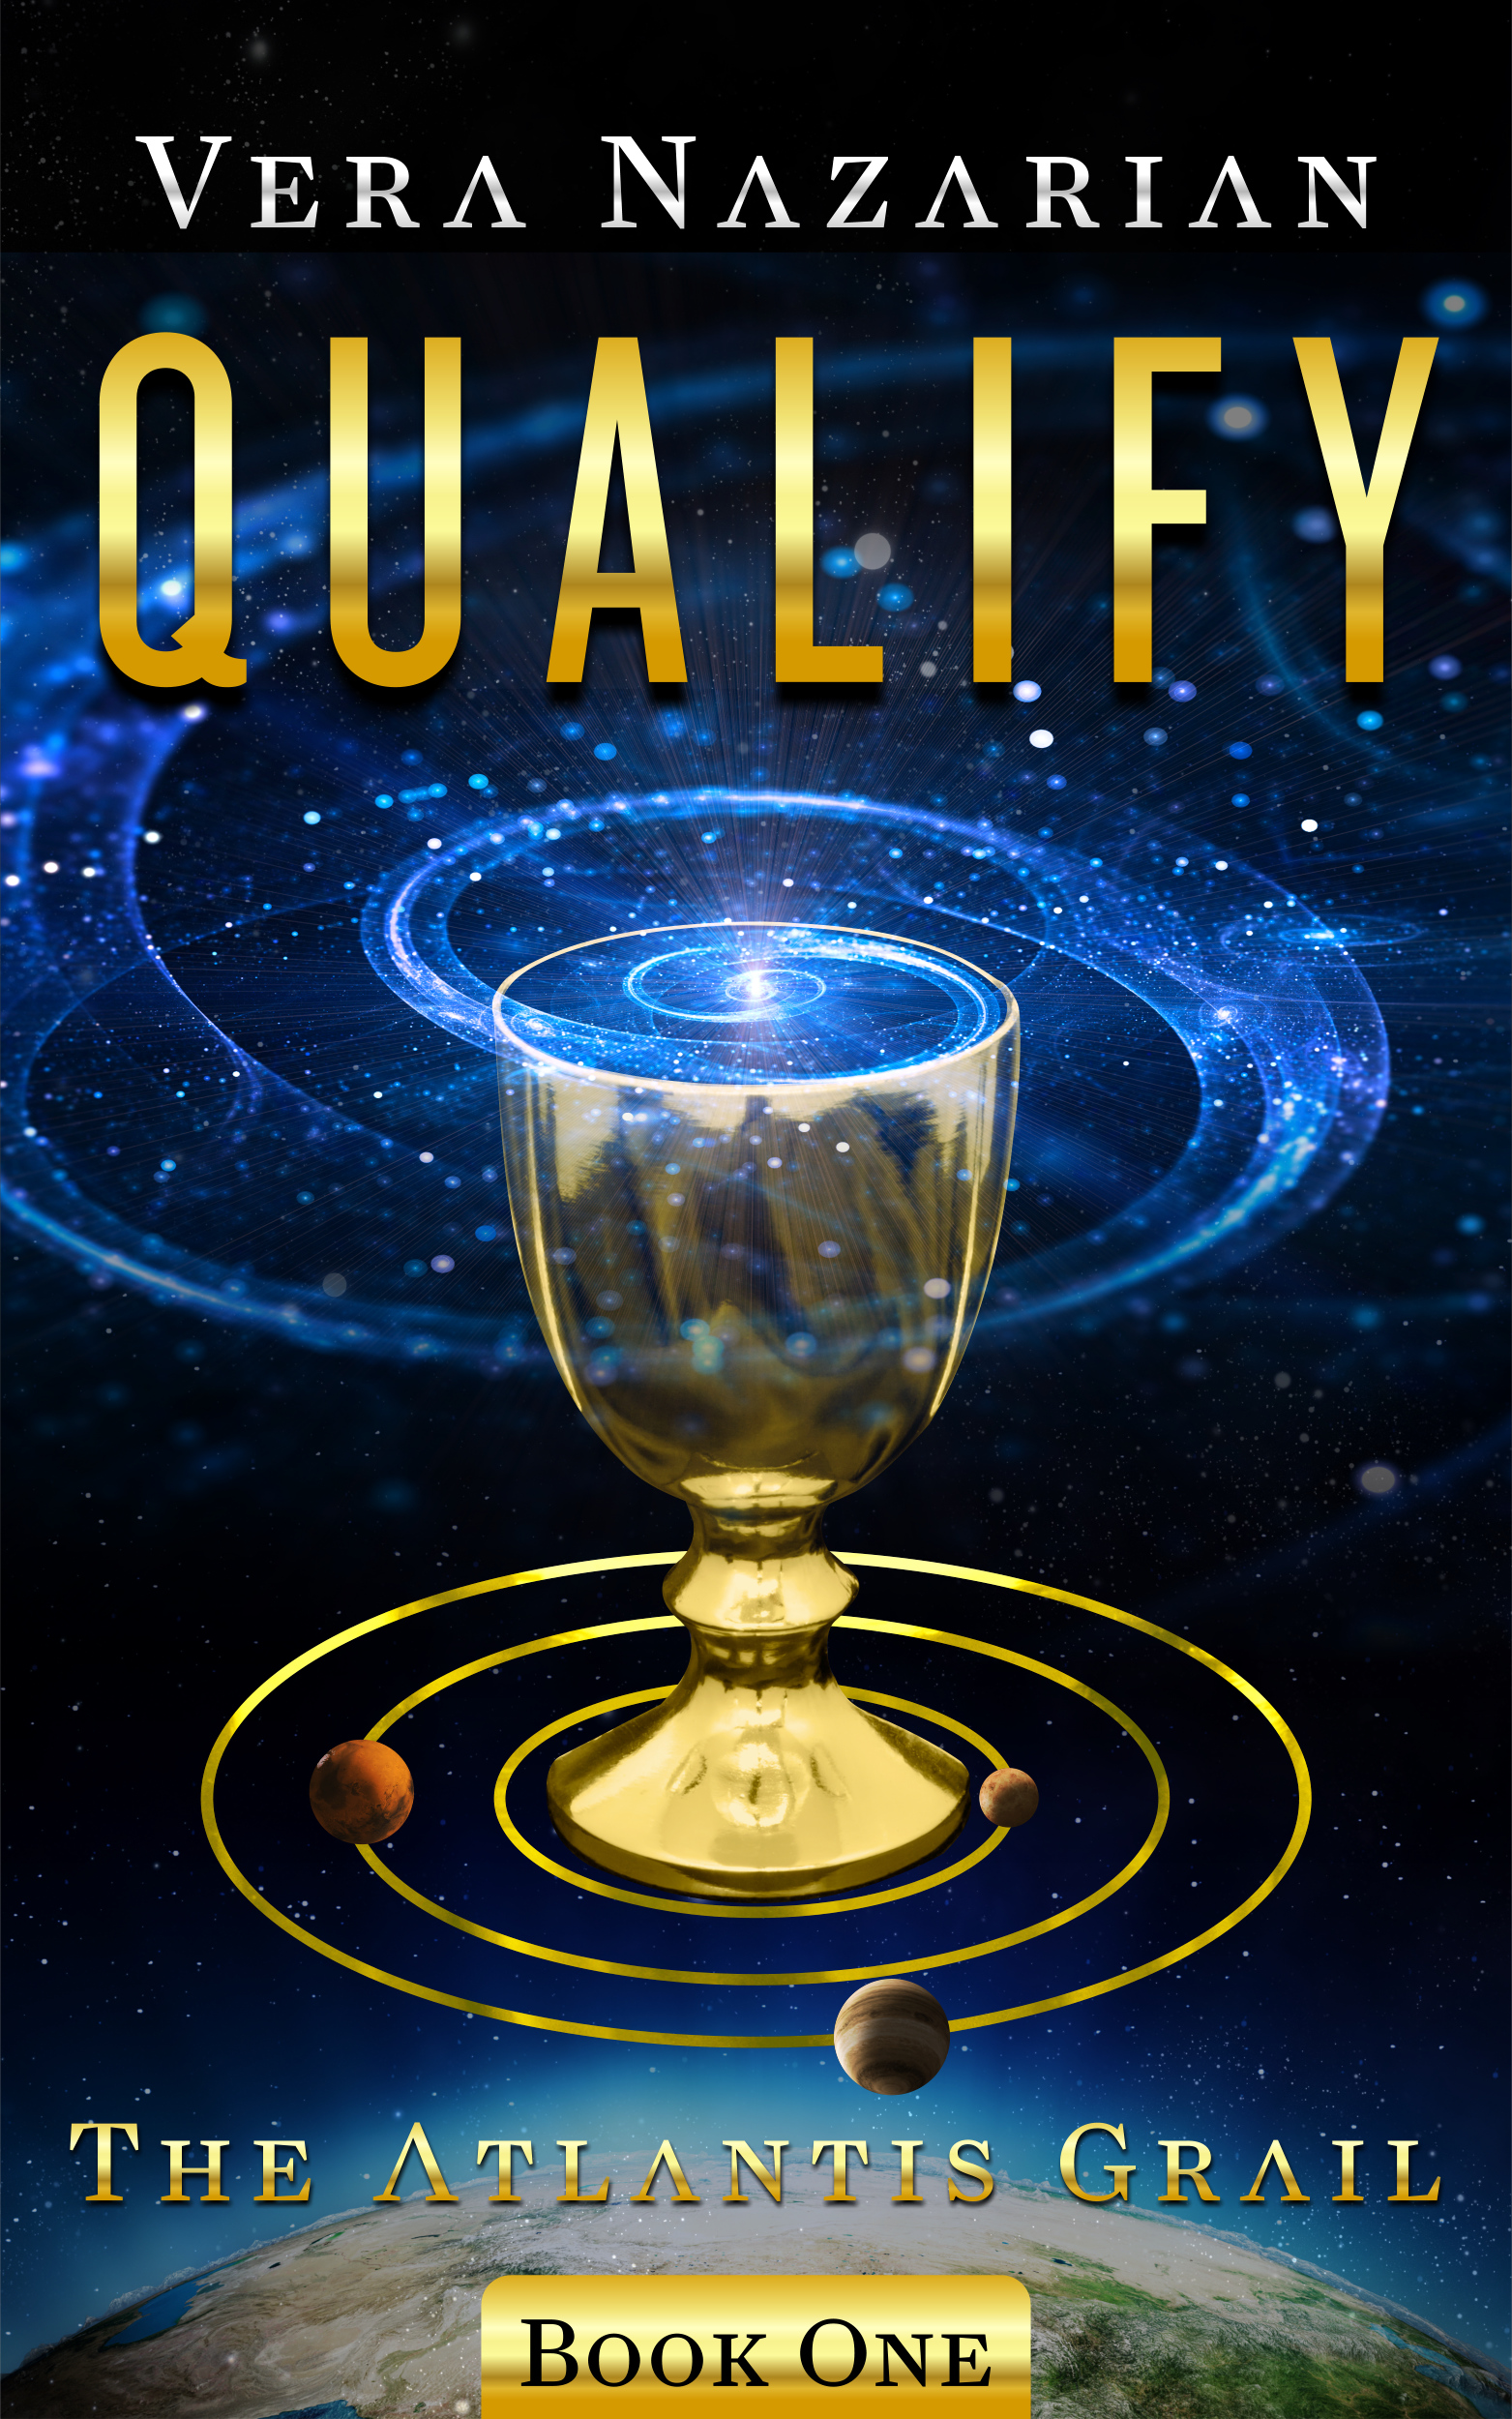 Qualify (The Atlantis Grail #1) (sst-ccxxviii)